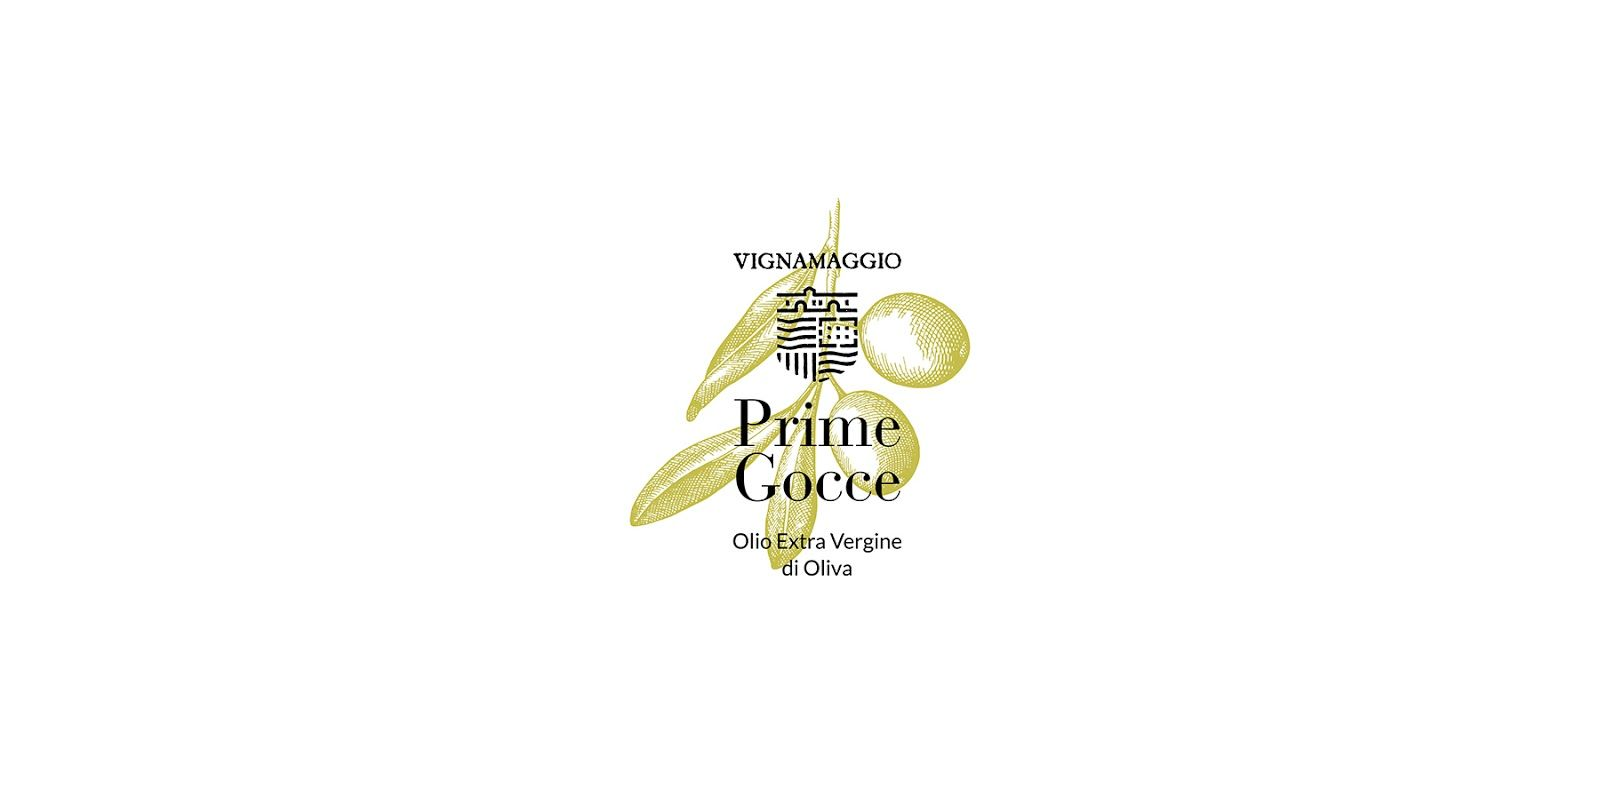 VIGNAMAGGIO on Packaging of the World - Creative Package Design Gallery